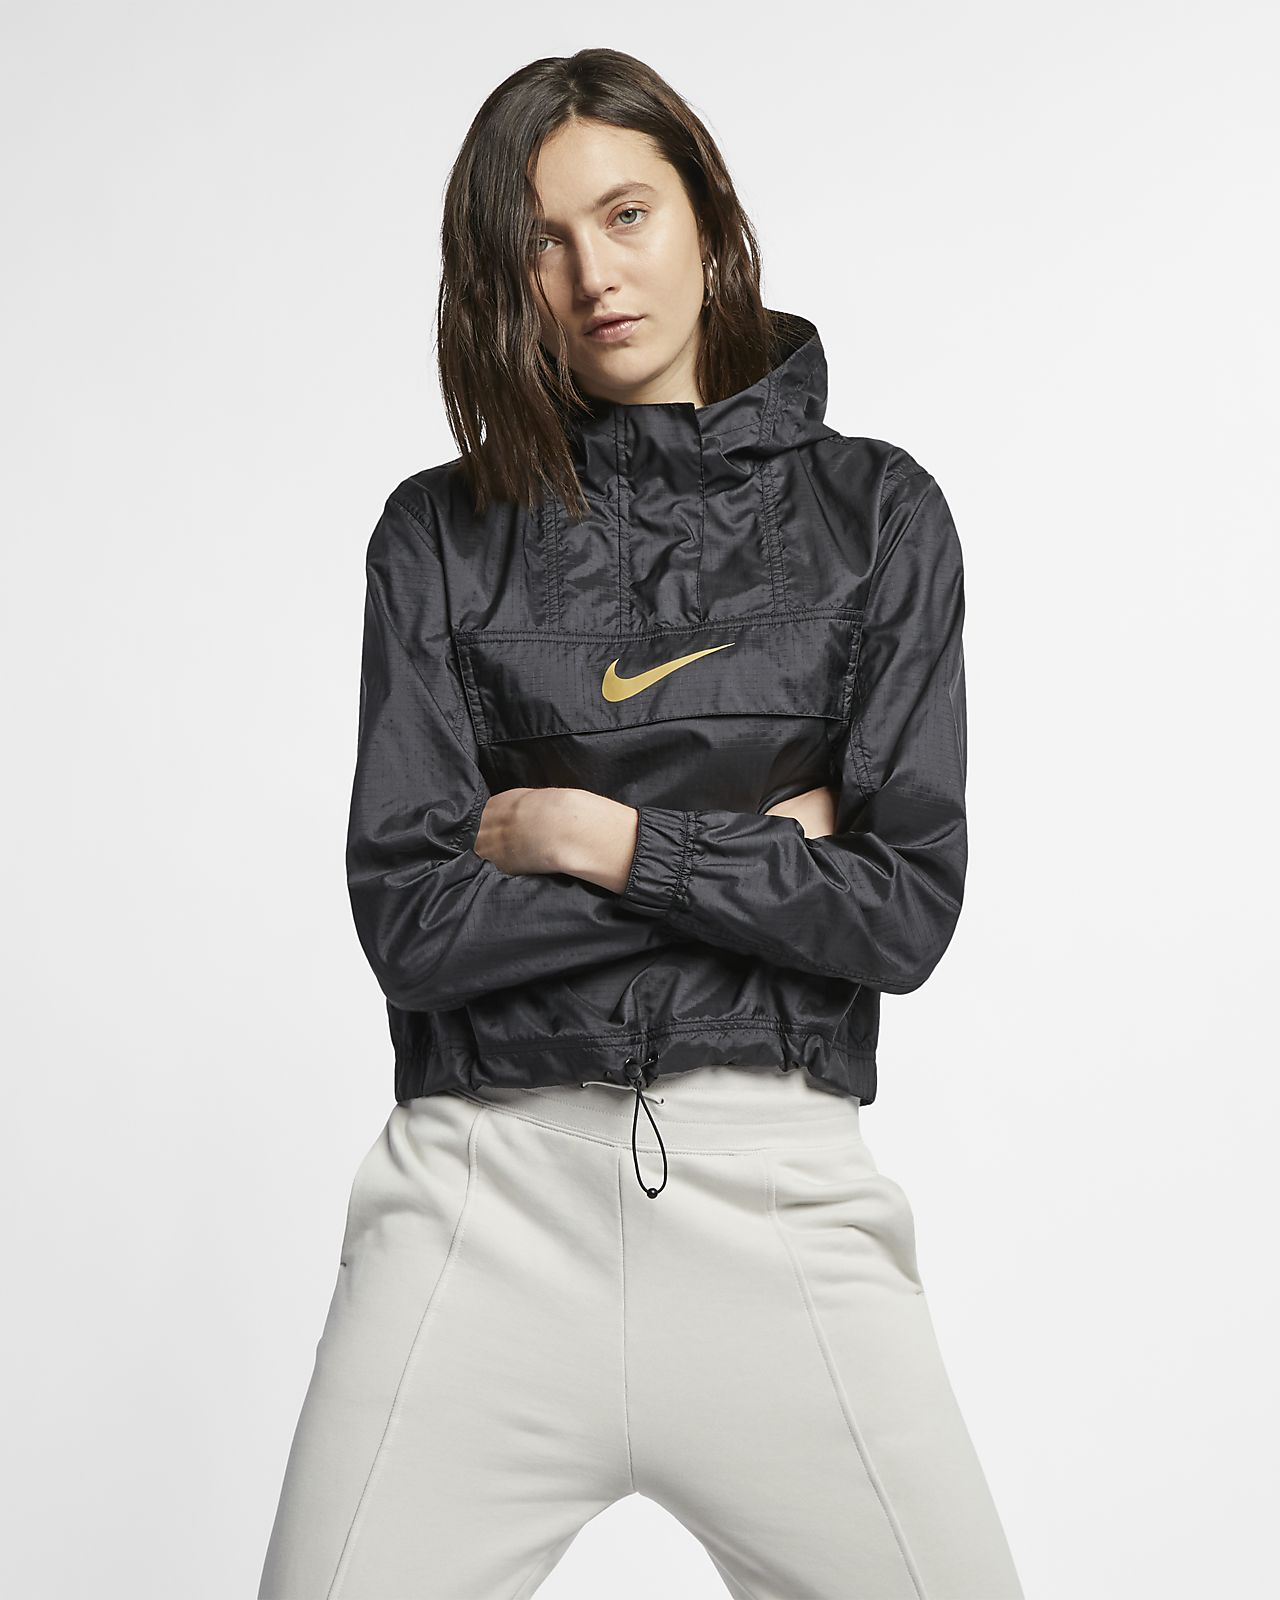 Nike Sportswear Animal Print leichter Damen-Windbreaker